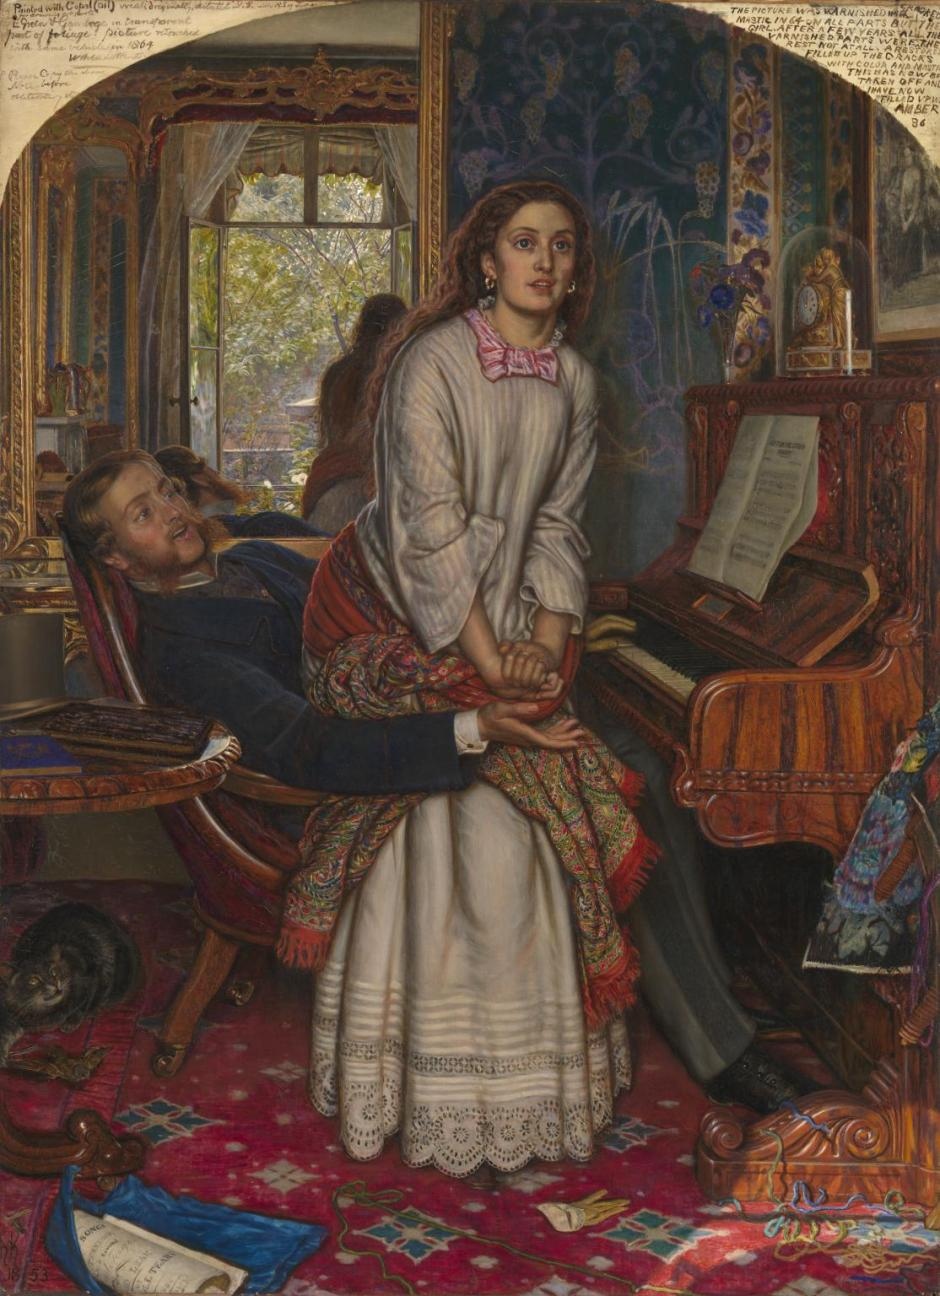 The Awakening Conscience 1853 by William Holman Hunt 1827-1910